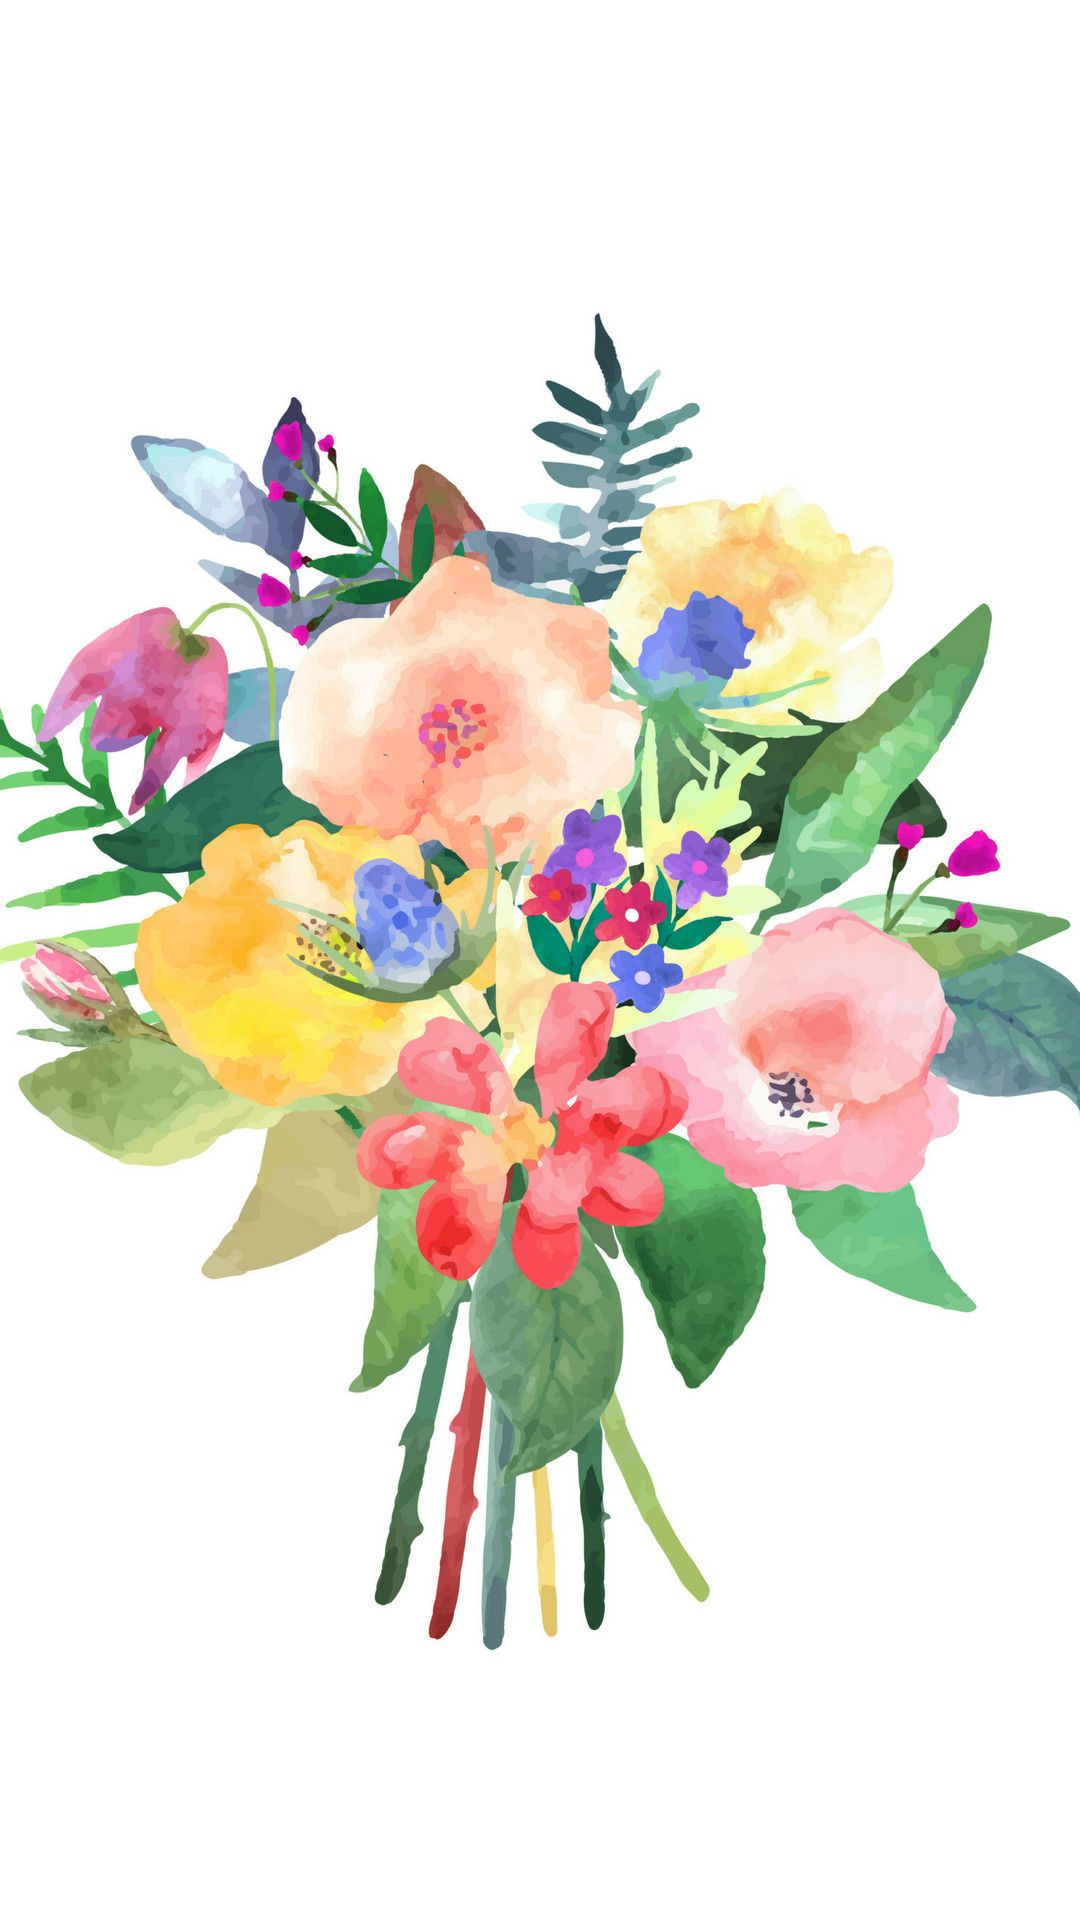 1080x1920 68+ Watercolor Flowers Wallpapers on WallpaperPlay